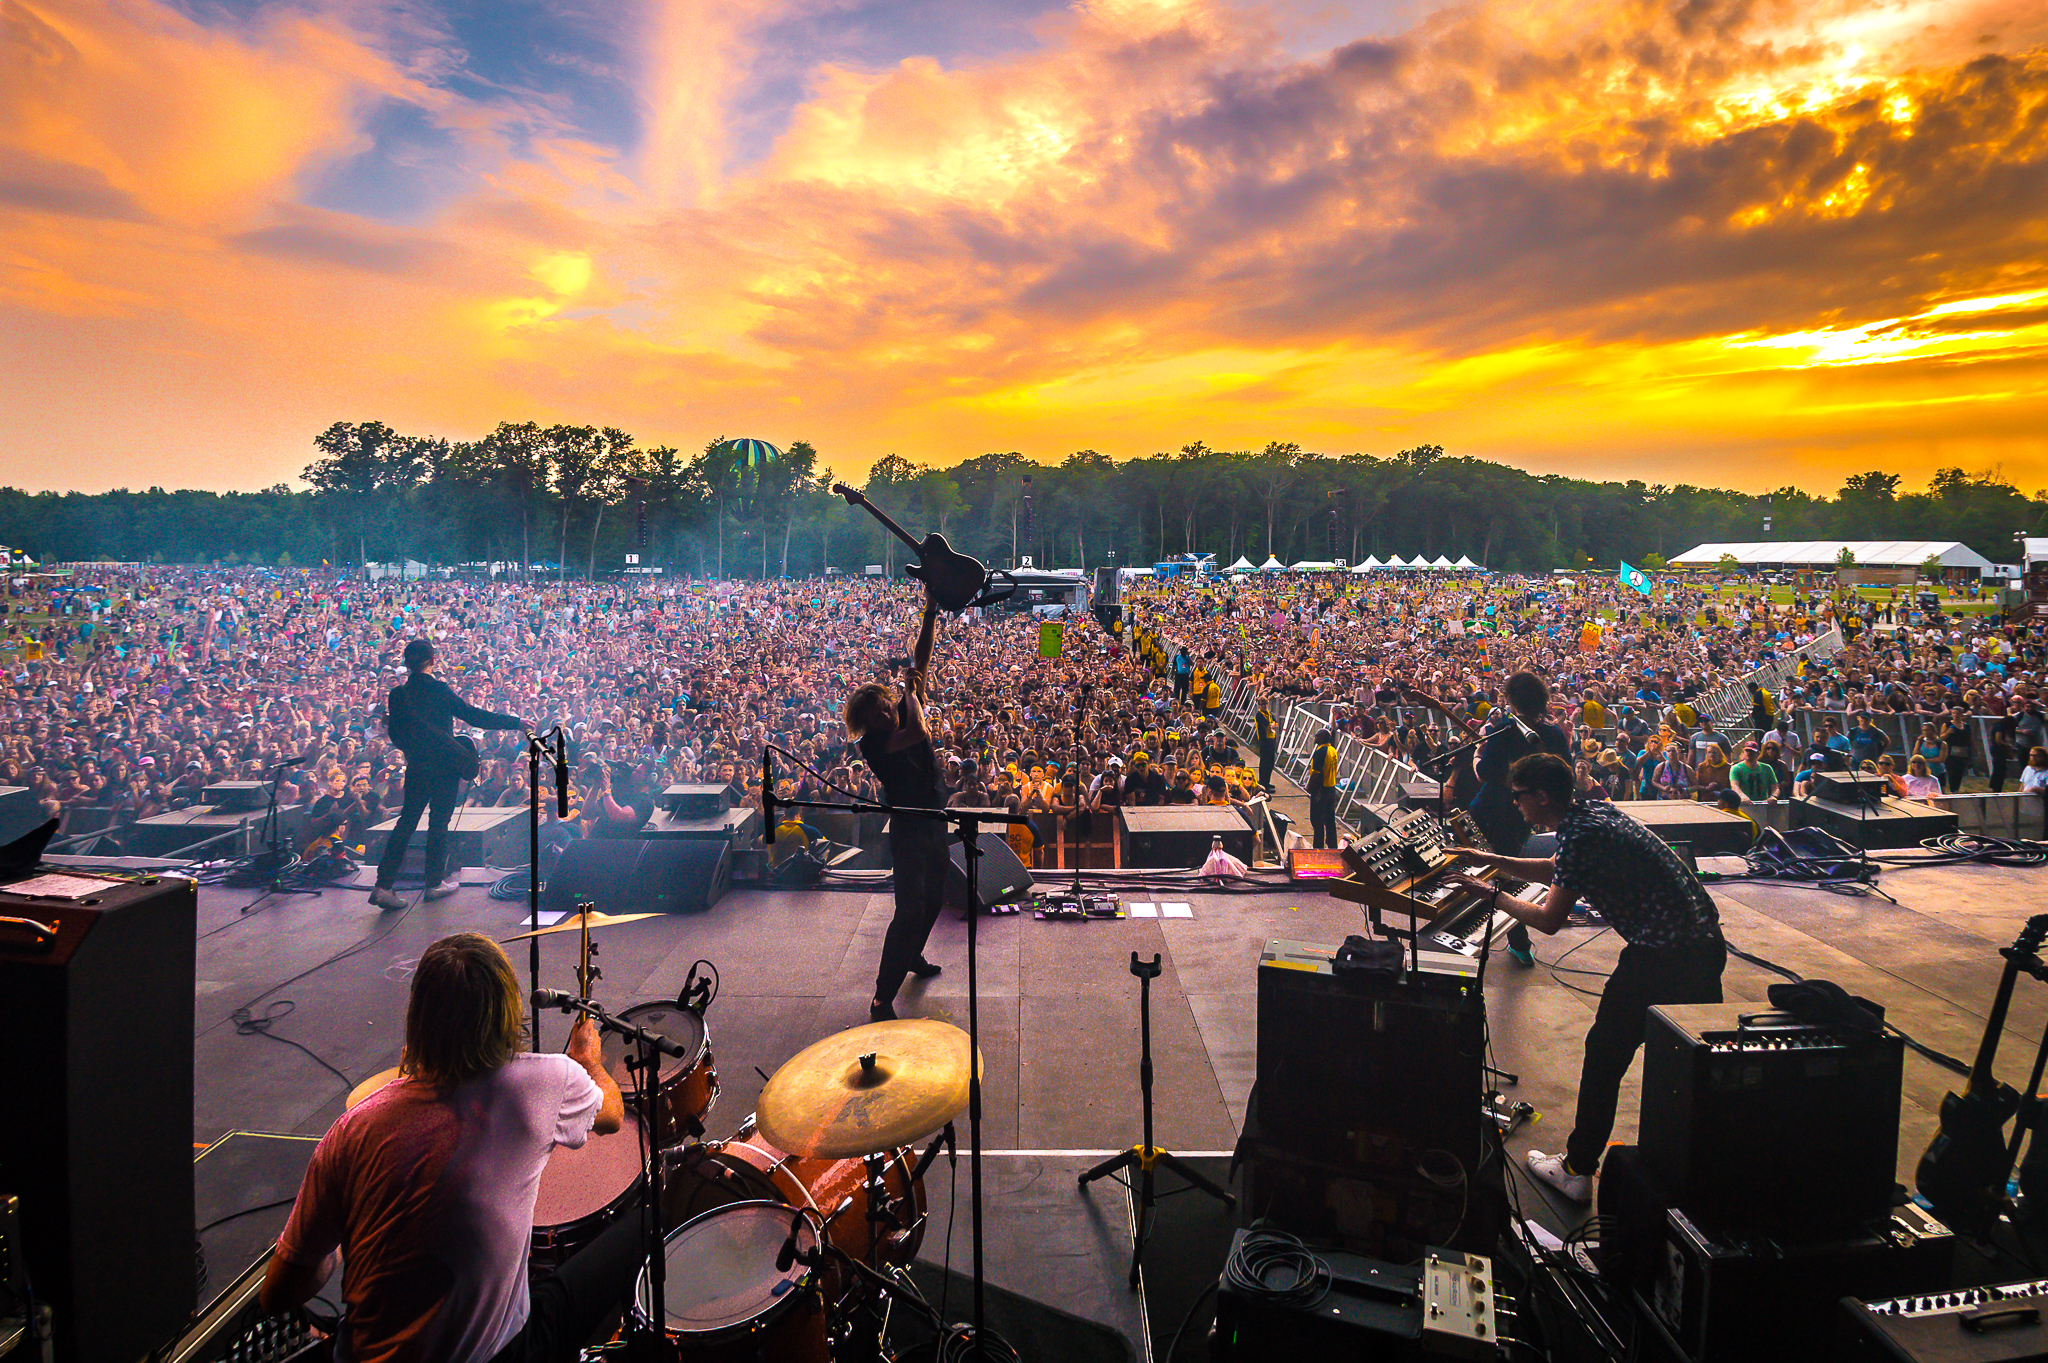 The 2018  Firefly headliners are Eminem, Kendrick Lamar, Arctic Monkeys, and The Killers. Other popular artists include ODESZA, Lil Wayne, Logic, Martin Garrix, SZA, alt-J, Portugal. The Man, Foster the People, MGMT, Mike D and more than 50 others. (Image: aLIVE Coverage)